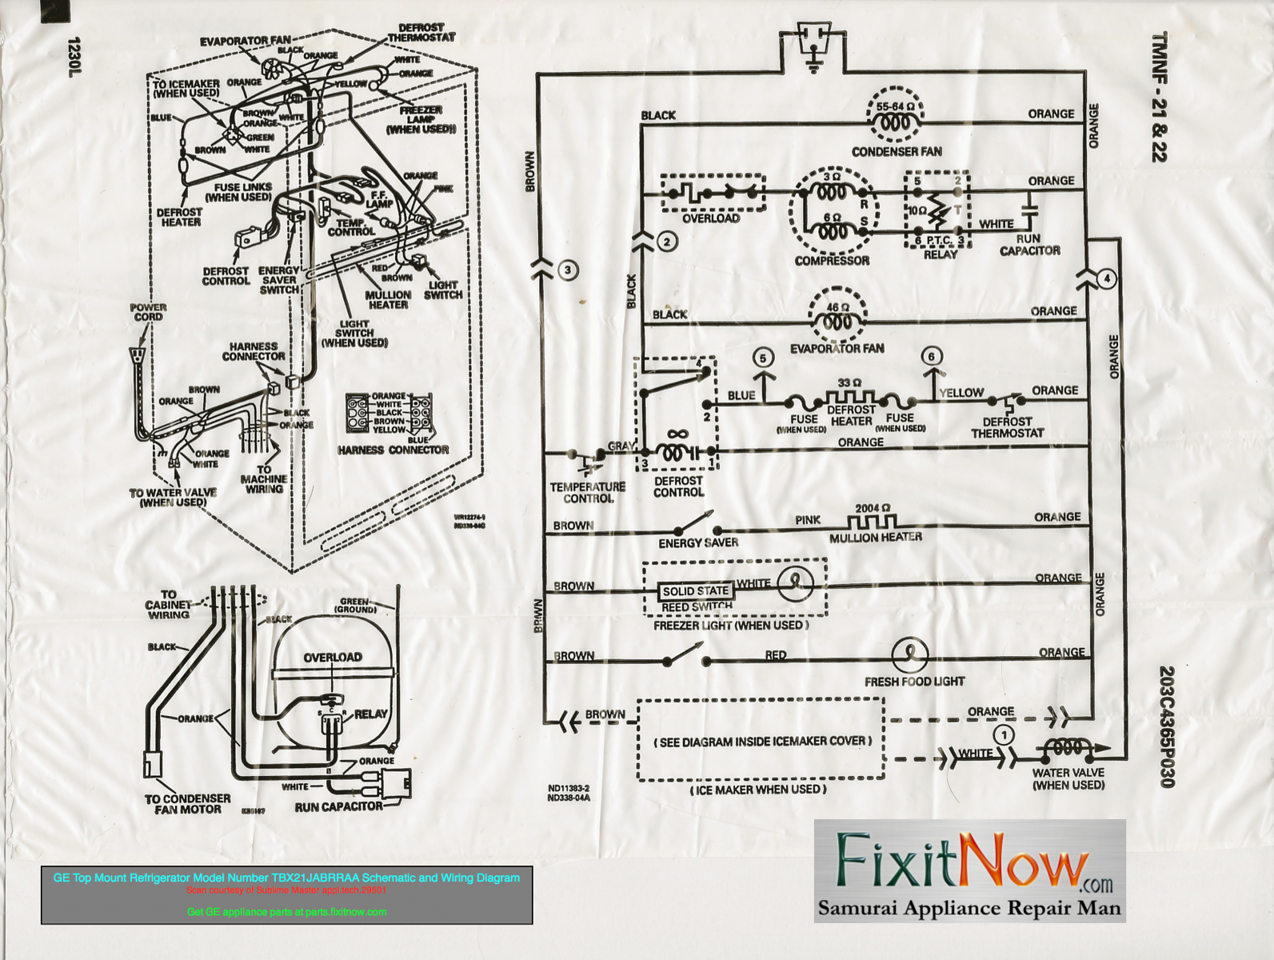 4904374061_e8eb3df6c6_o X2 wiring diagrams and schematics appliantology wiring diagram schematic at alyssarenee.co